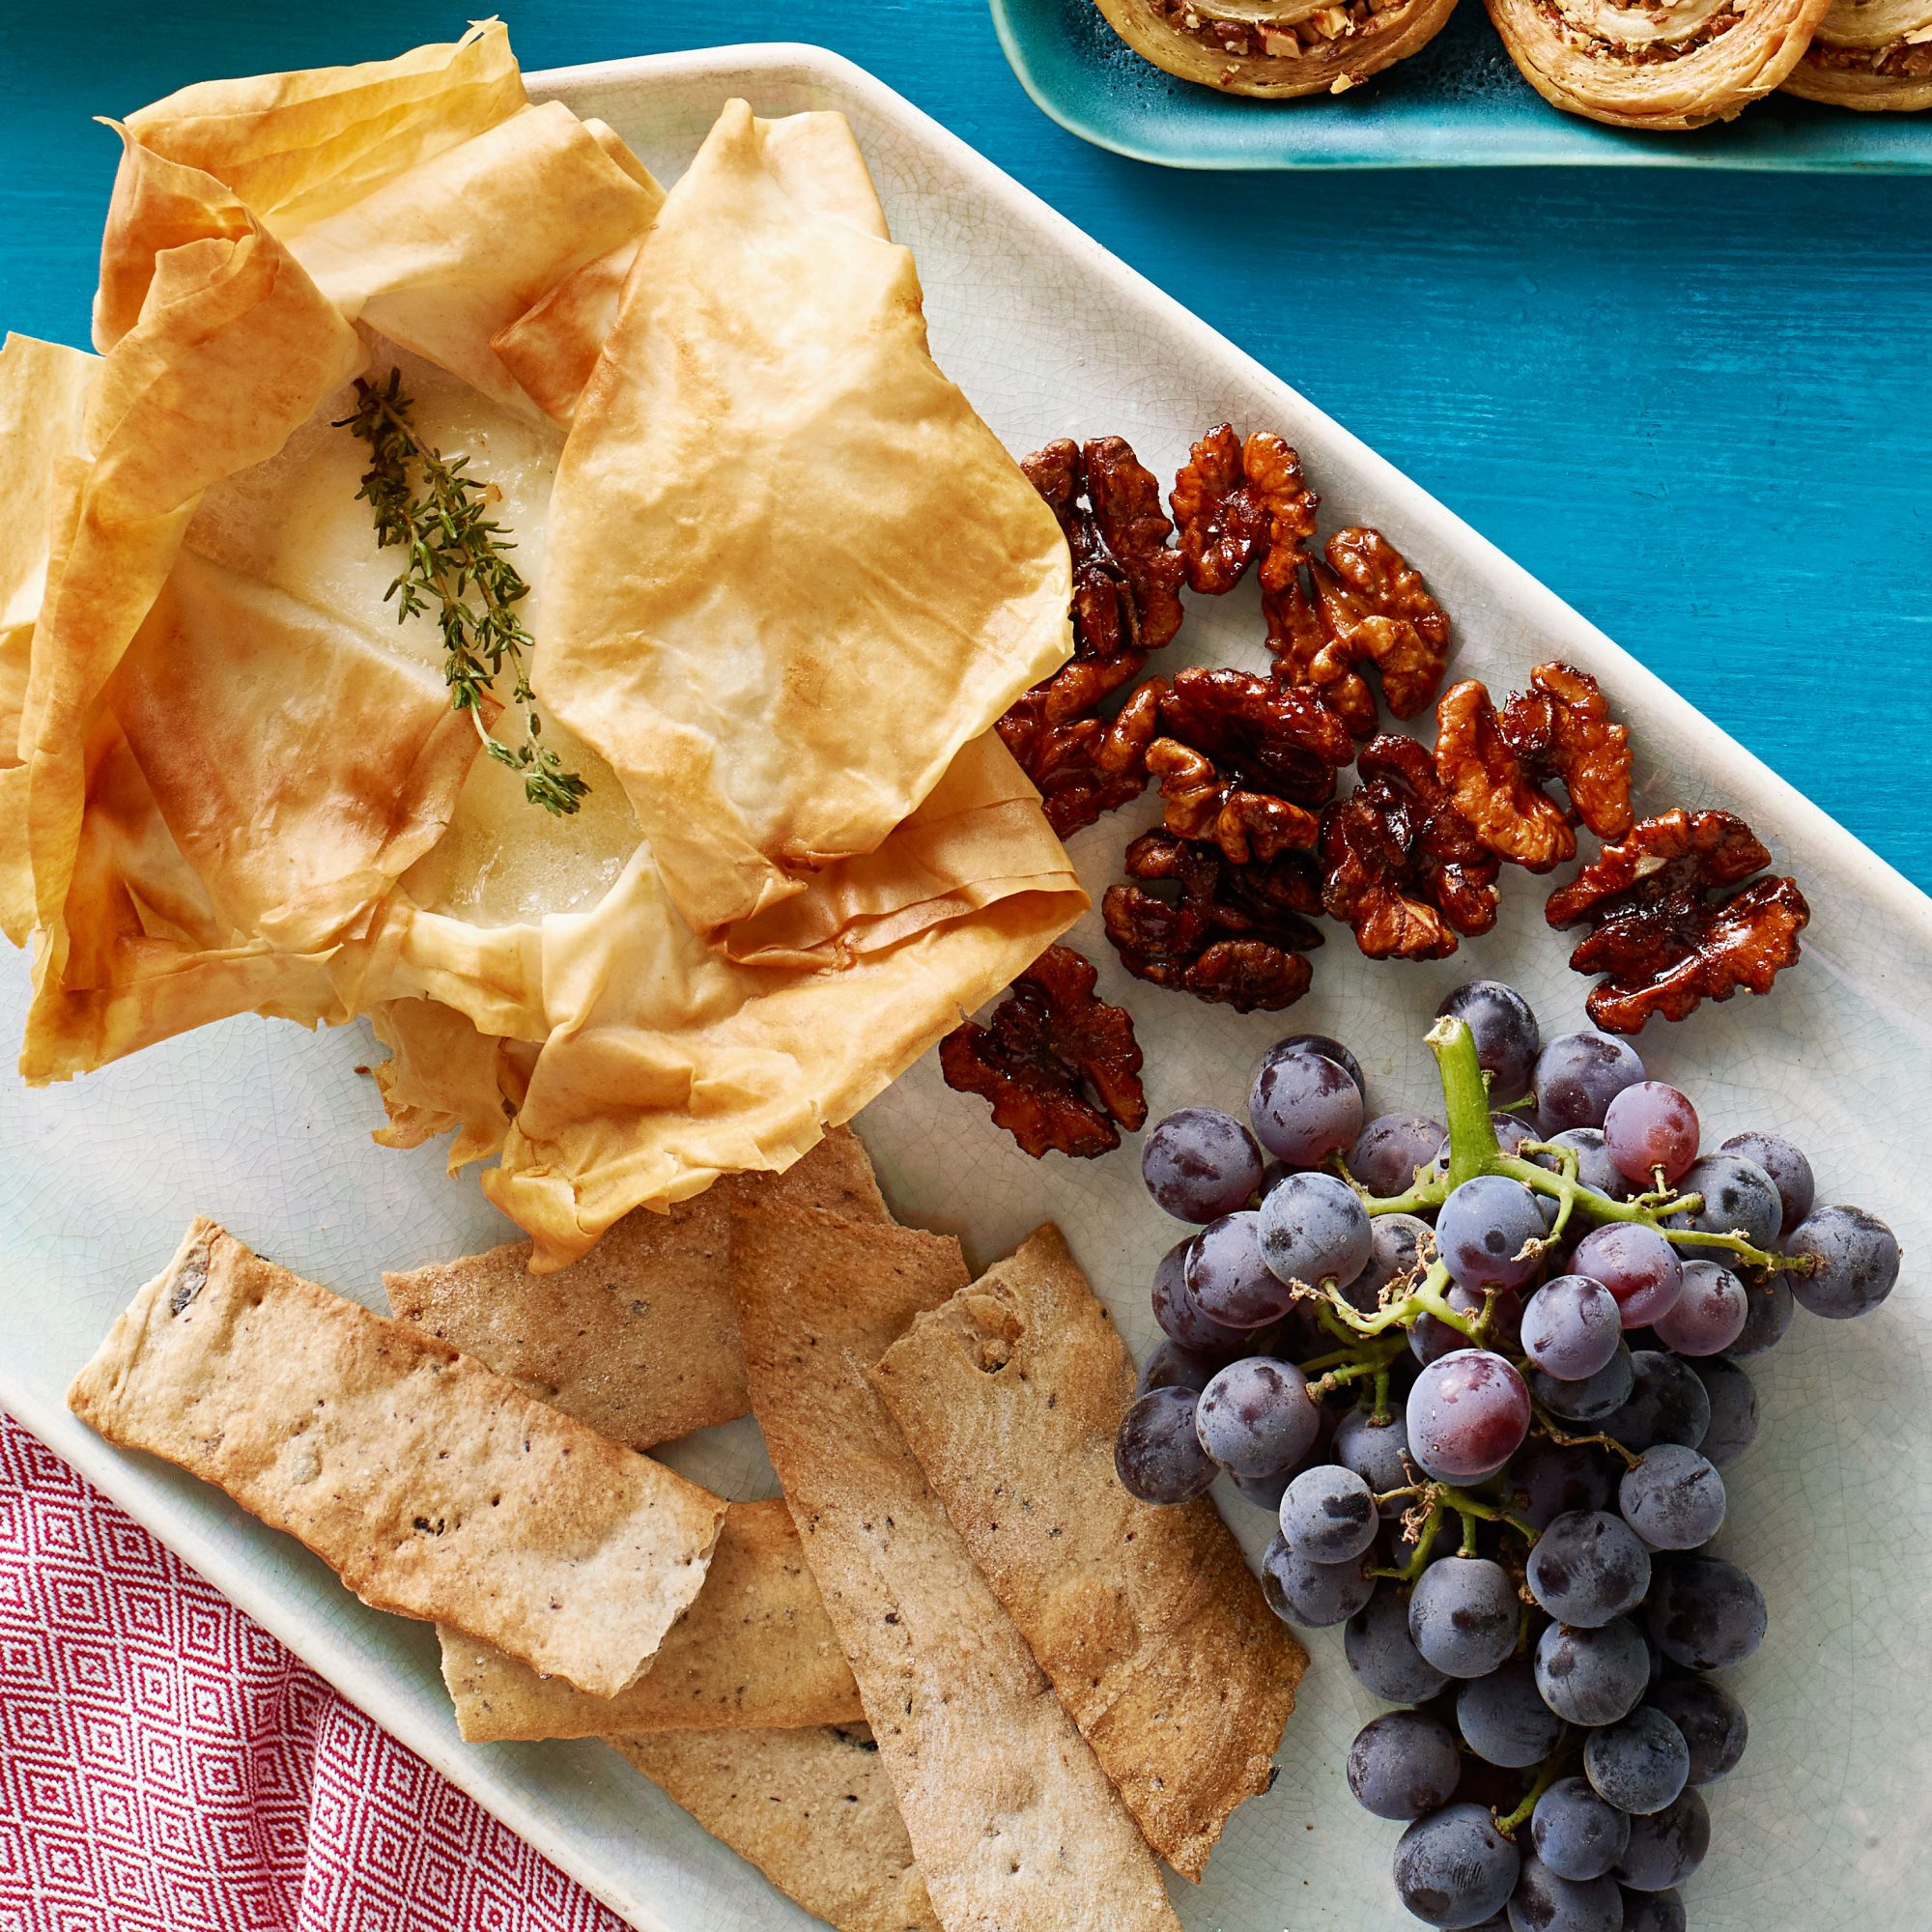 Baked Cheese Plate